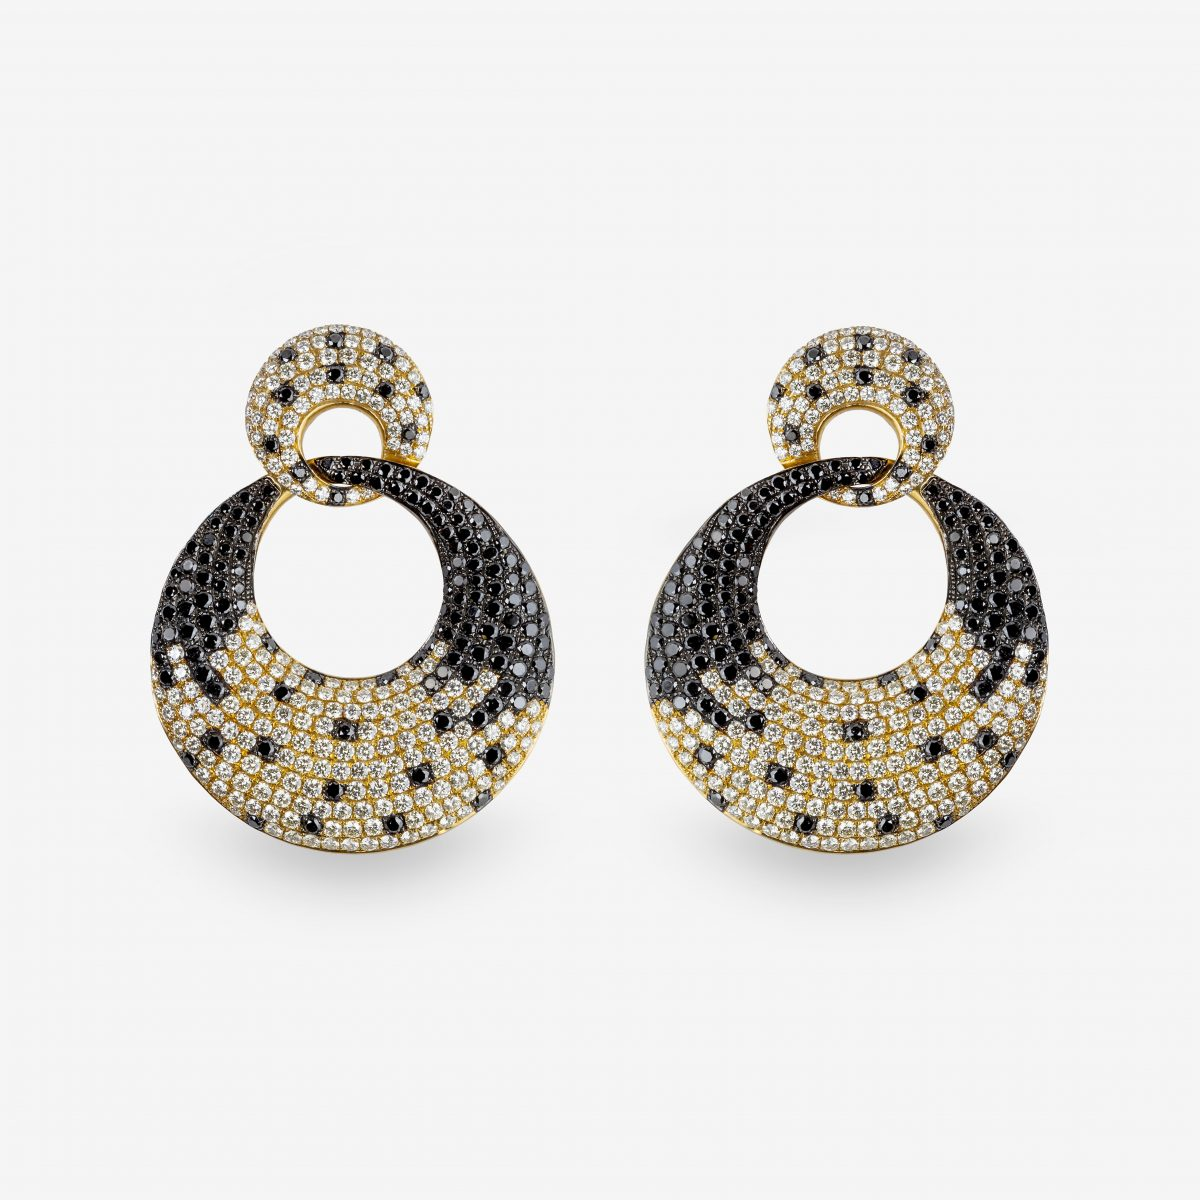 Pendientes oro amarillo y brillantes 8,62 quilates.